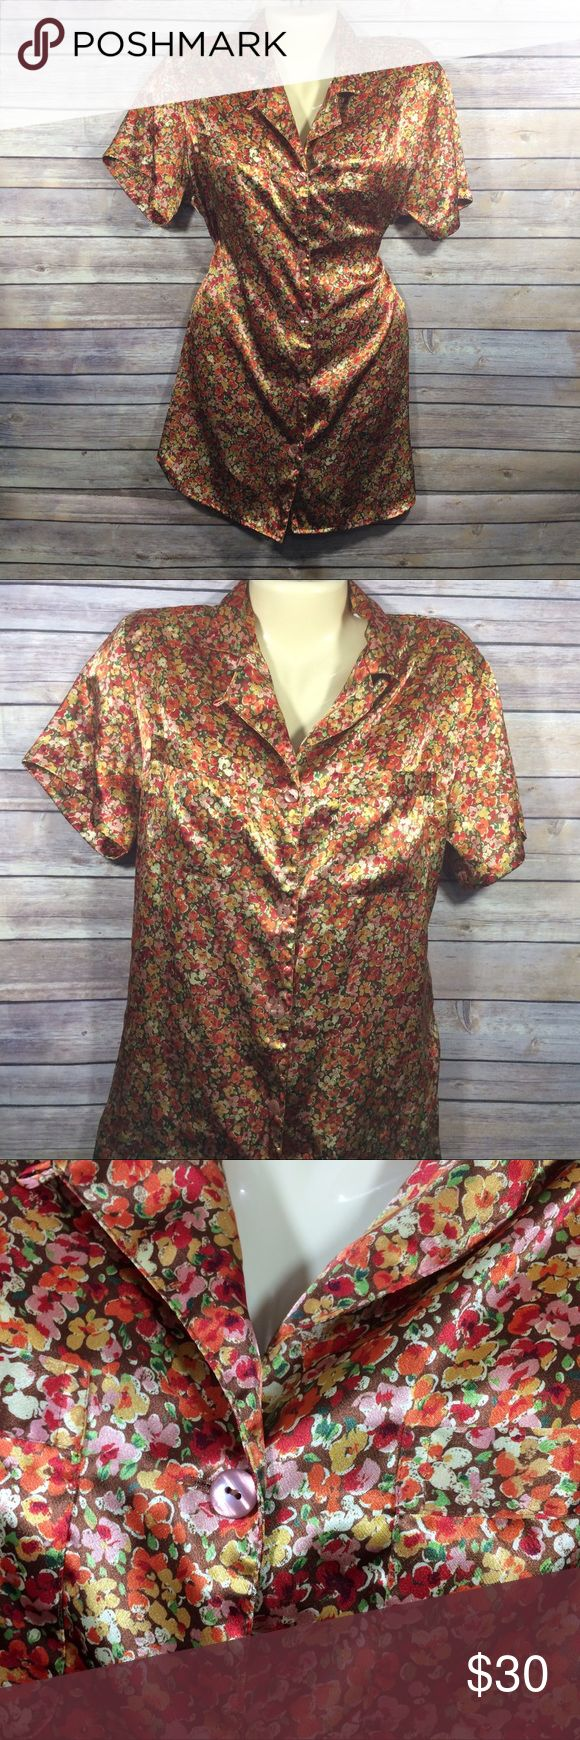 Victoria's Secret Vintage Satin Sleepshirt PJs XS Victoria's Secret Vintage Satin Sleepshirt Nightgown button down Floral print with brown and orange colors. Size XS. Size chart is in images.  All measurements were taken with item laying flat. Condition: barely worn like new.  Silky shiny sexy comfortable perfect for a good nights rest💤💤 all of my closet is stored in a climate controlled storage unit. Victoria's Secret Intimates & Sleepwear Pajamas